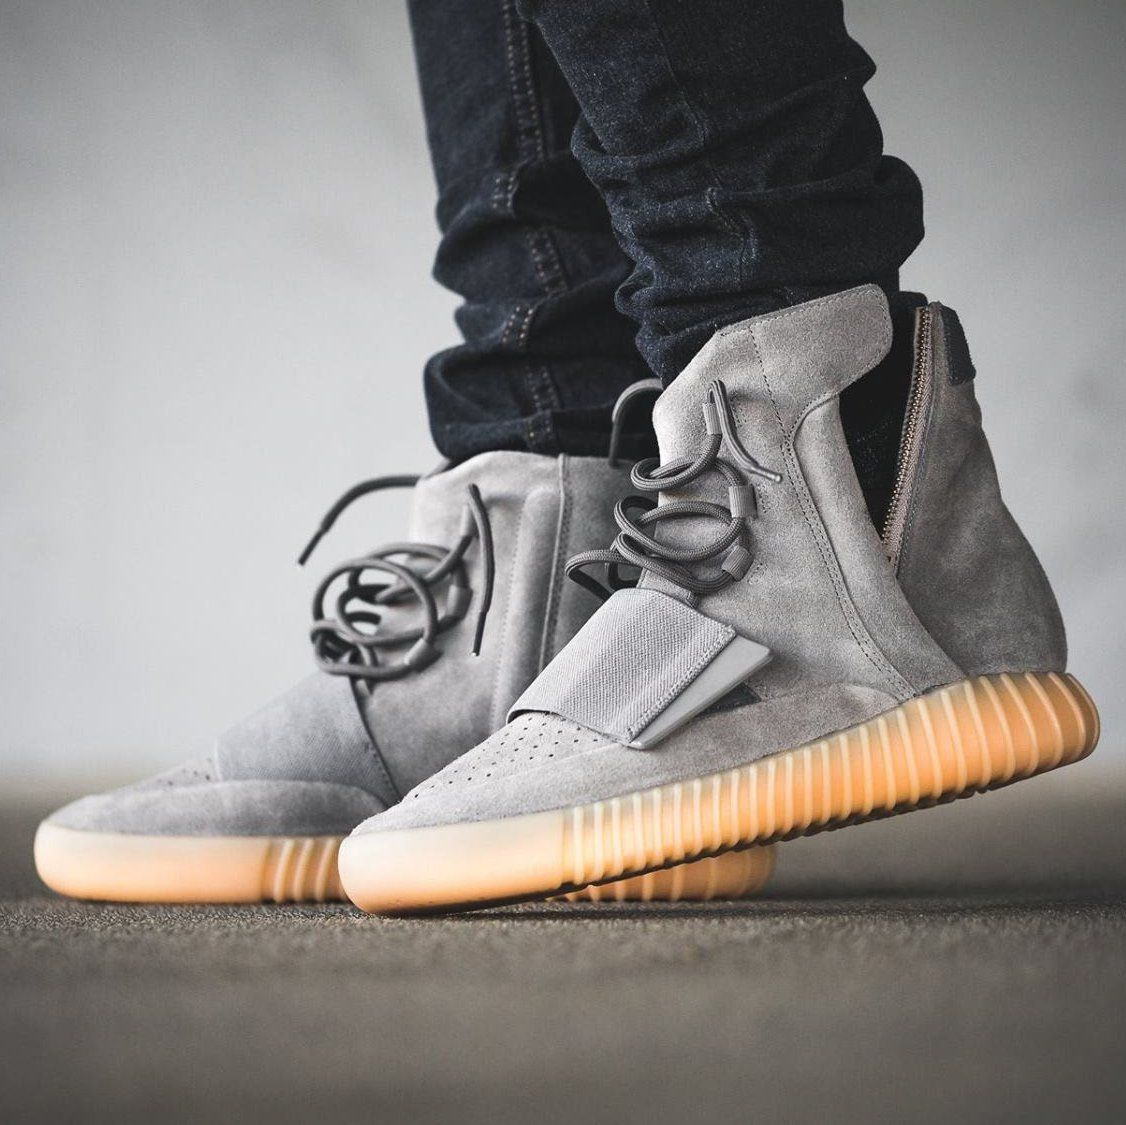 Adidas Yeezy Boost 750 Gum #Leather, #Premium, #Sneakers